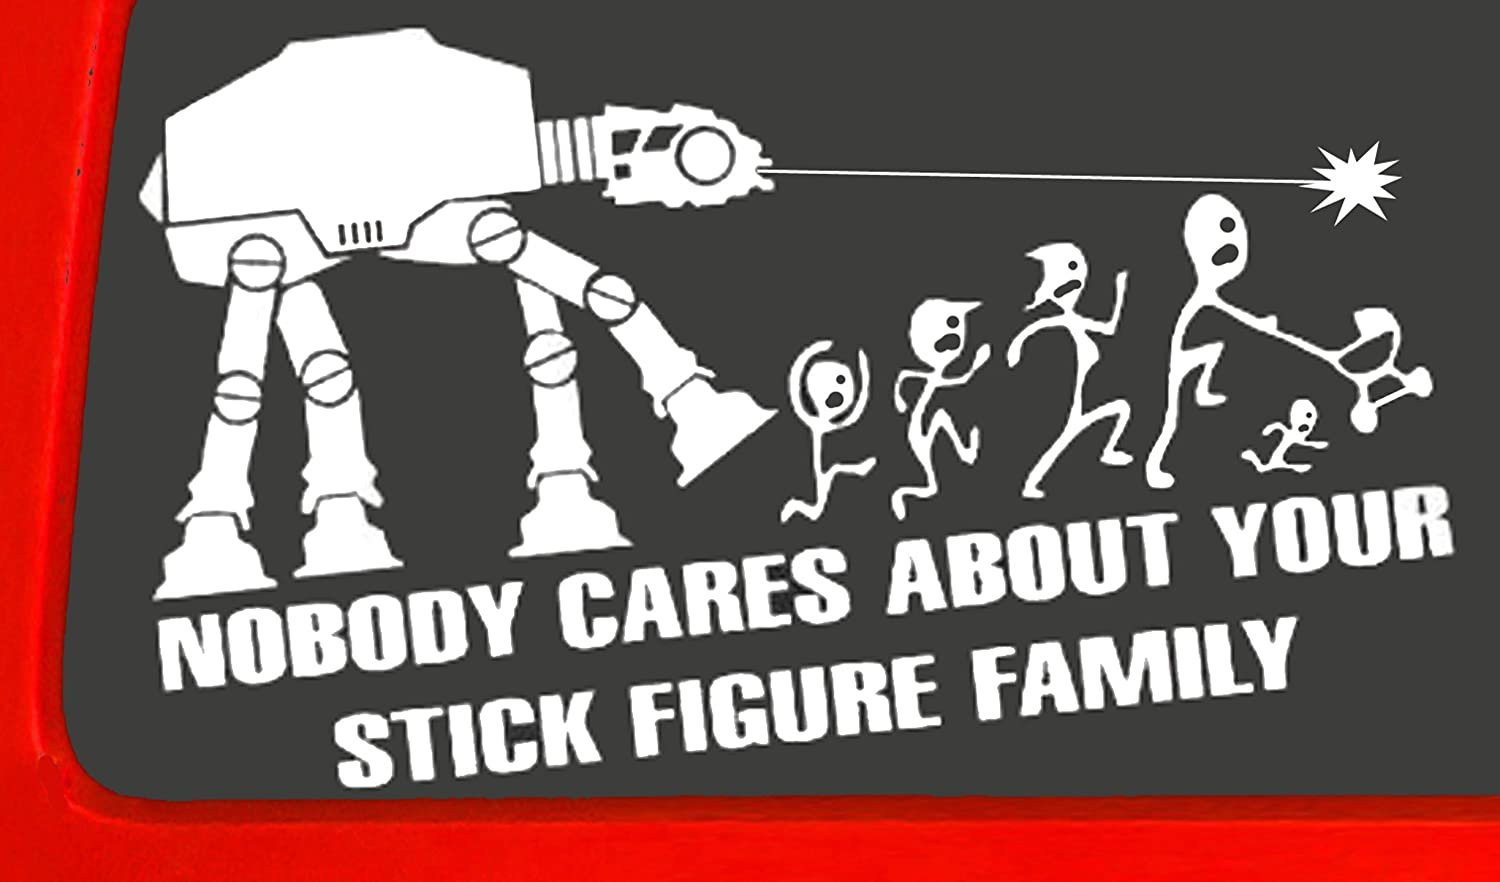 Amazoncom NOBODY CARES ABOUT YOUR STICK FIGURE FAMILY Your Stick - Vinyl decals for your caramazoncom your stick family was delicious trex vinyl decal